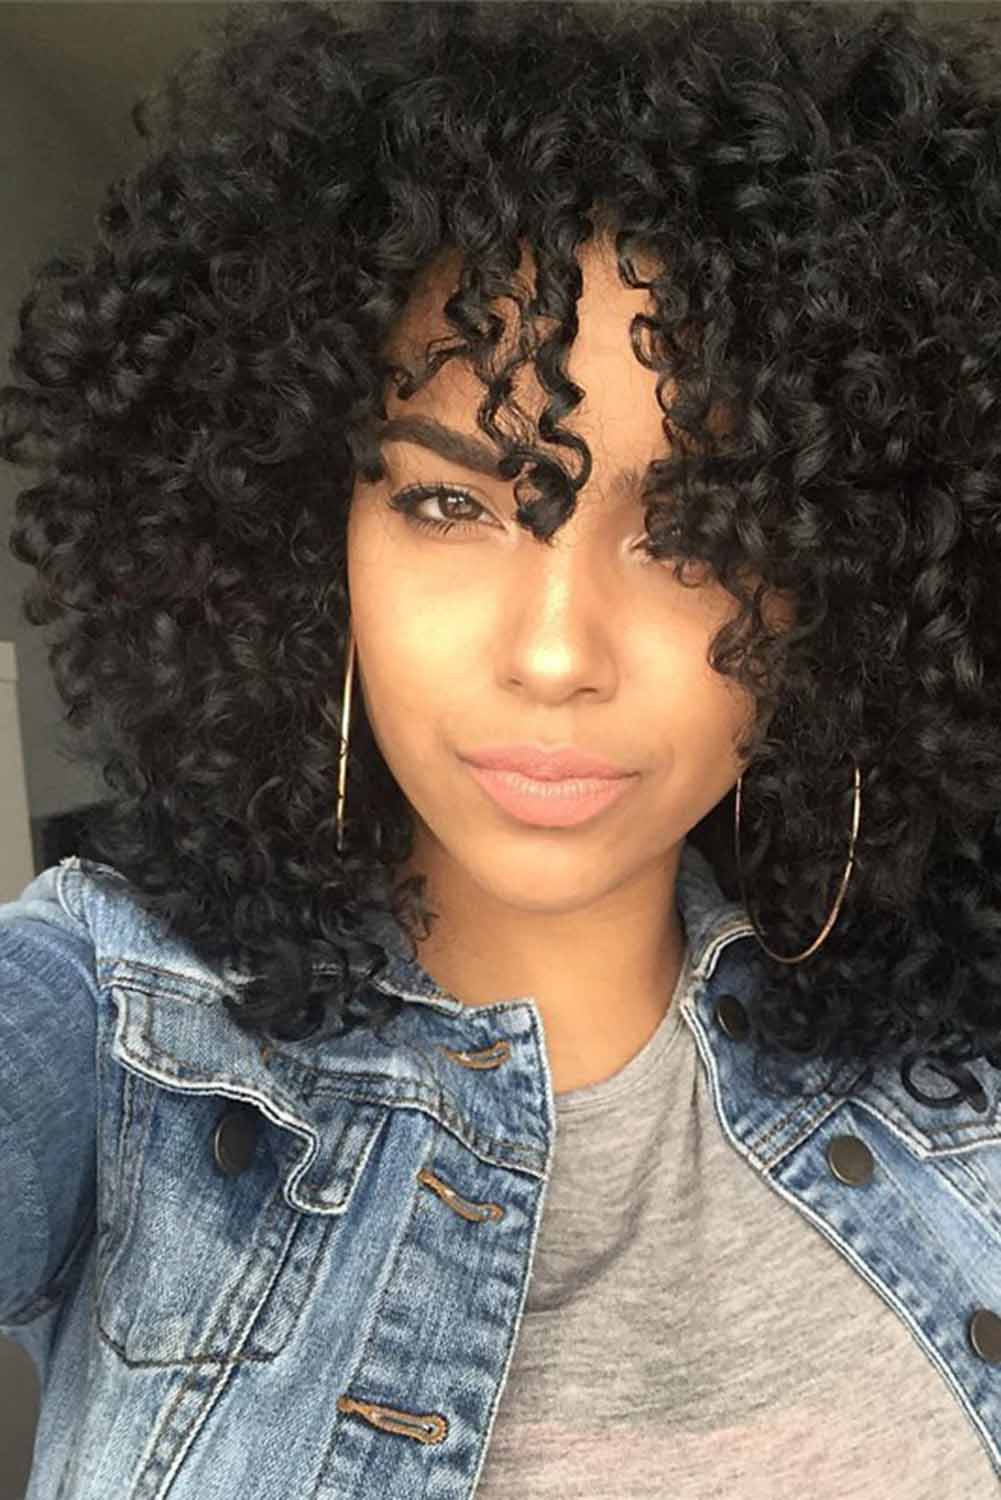 Black Synthetic Afro Short Curly Wig Hair Wigs Discount Designer Fashion Clothes Shoes Bags Women Men Kids Children Black Owned Business